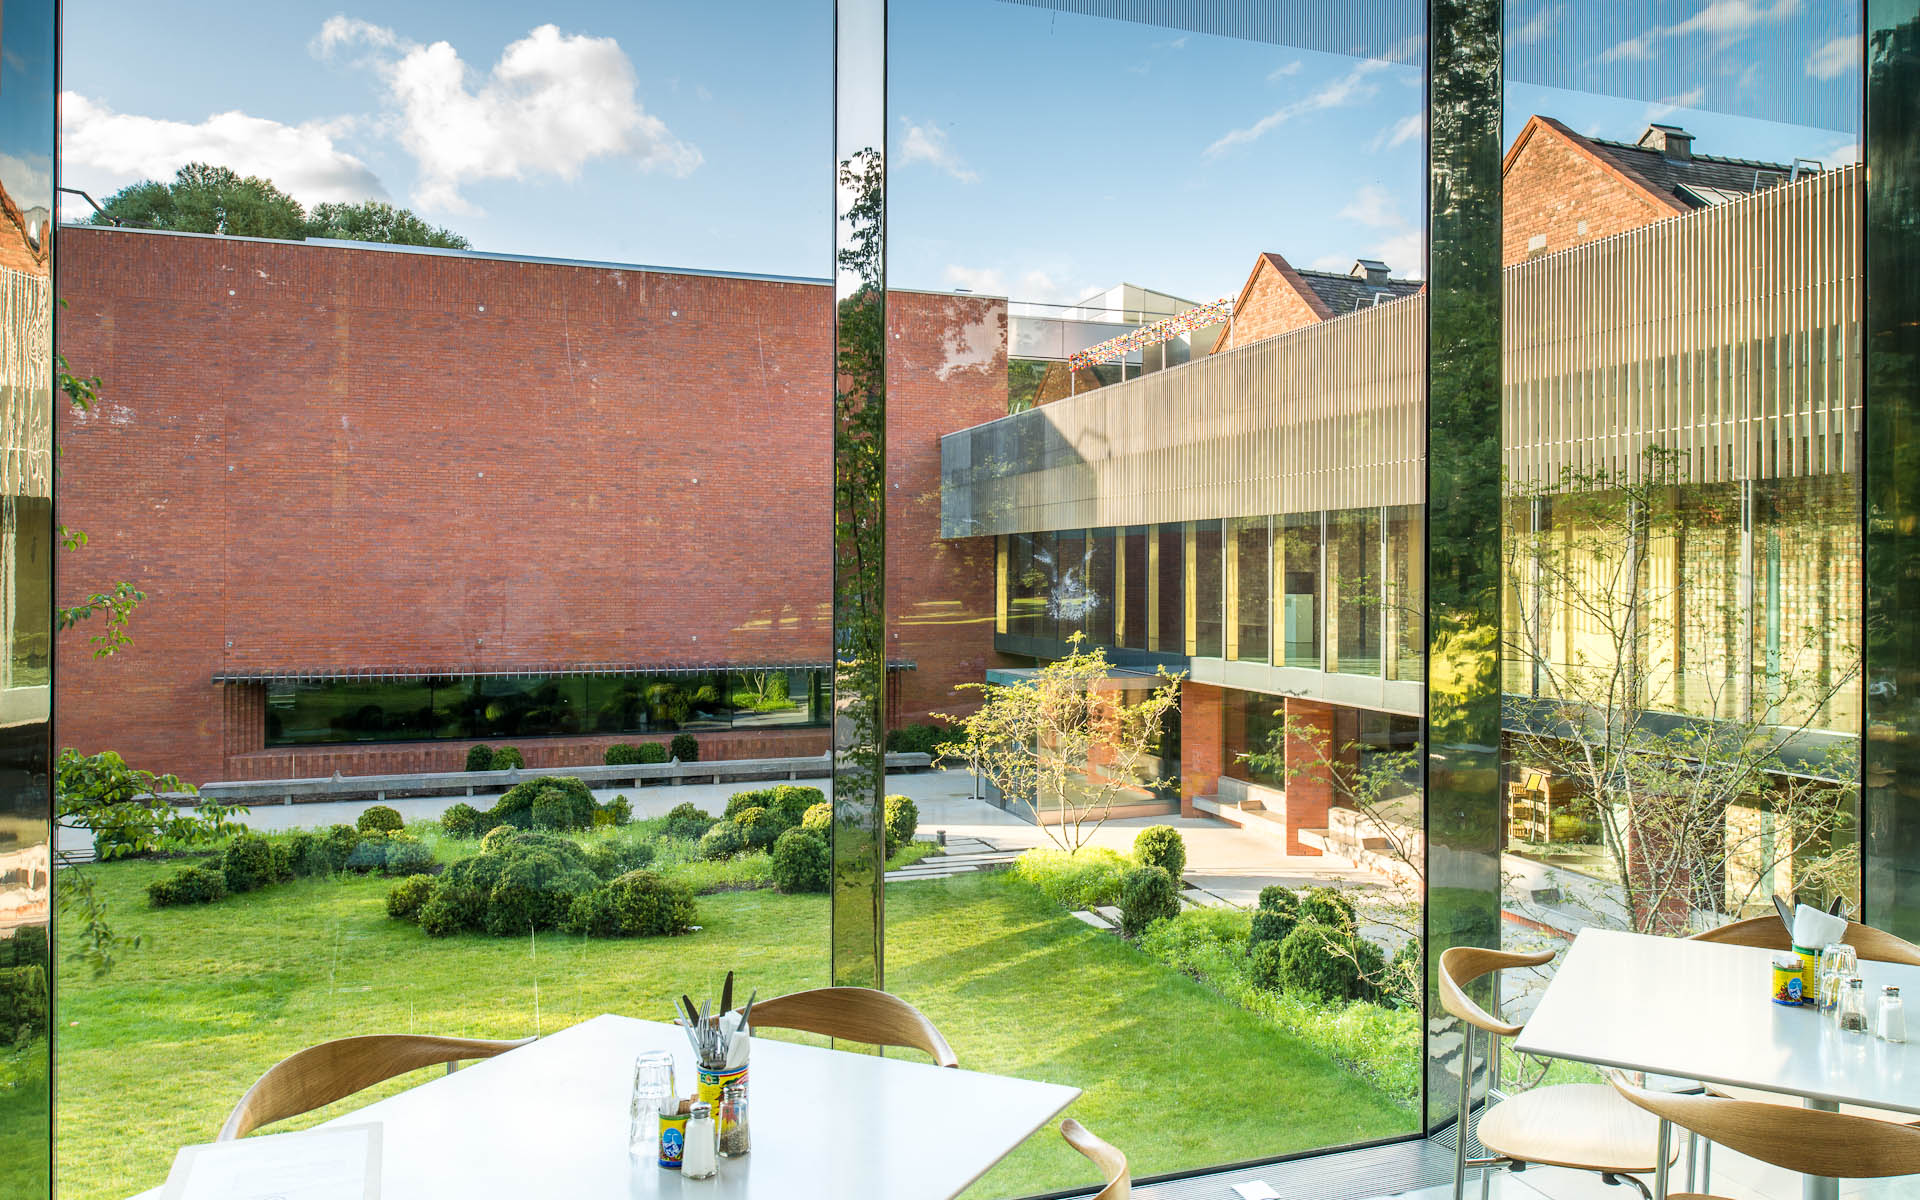 WHITWORTH ART GALLERY, MANCHESTER |  MUMA